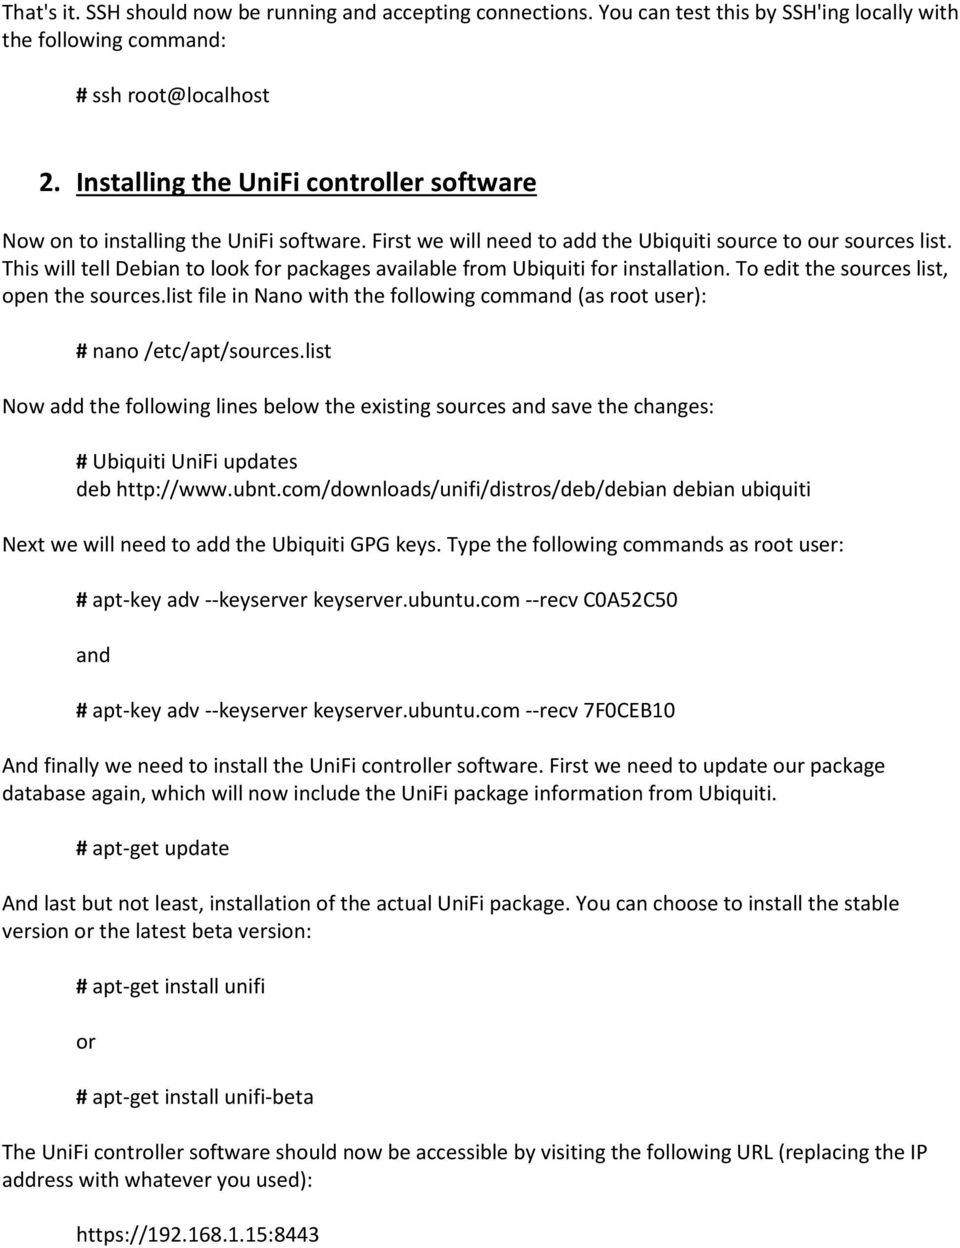 Install and configure a Debian based UniFi controller - PDF